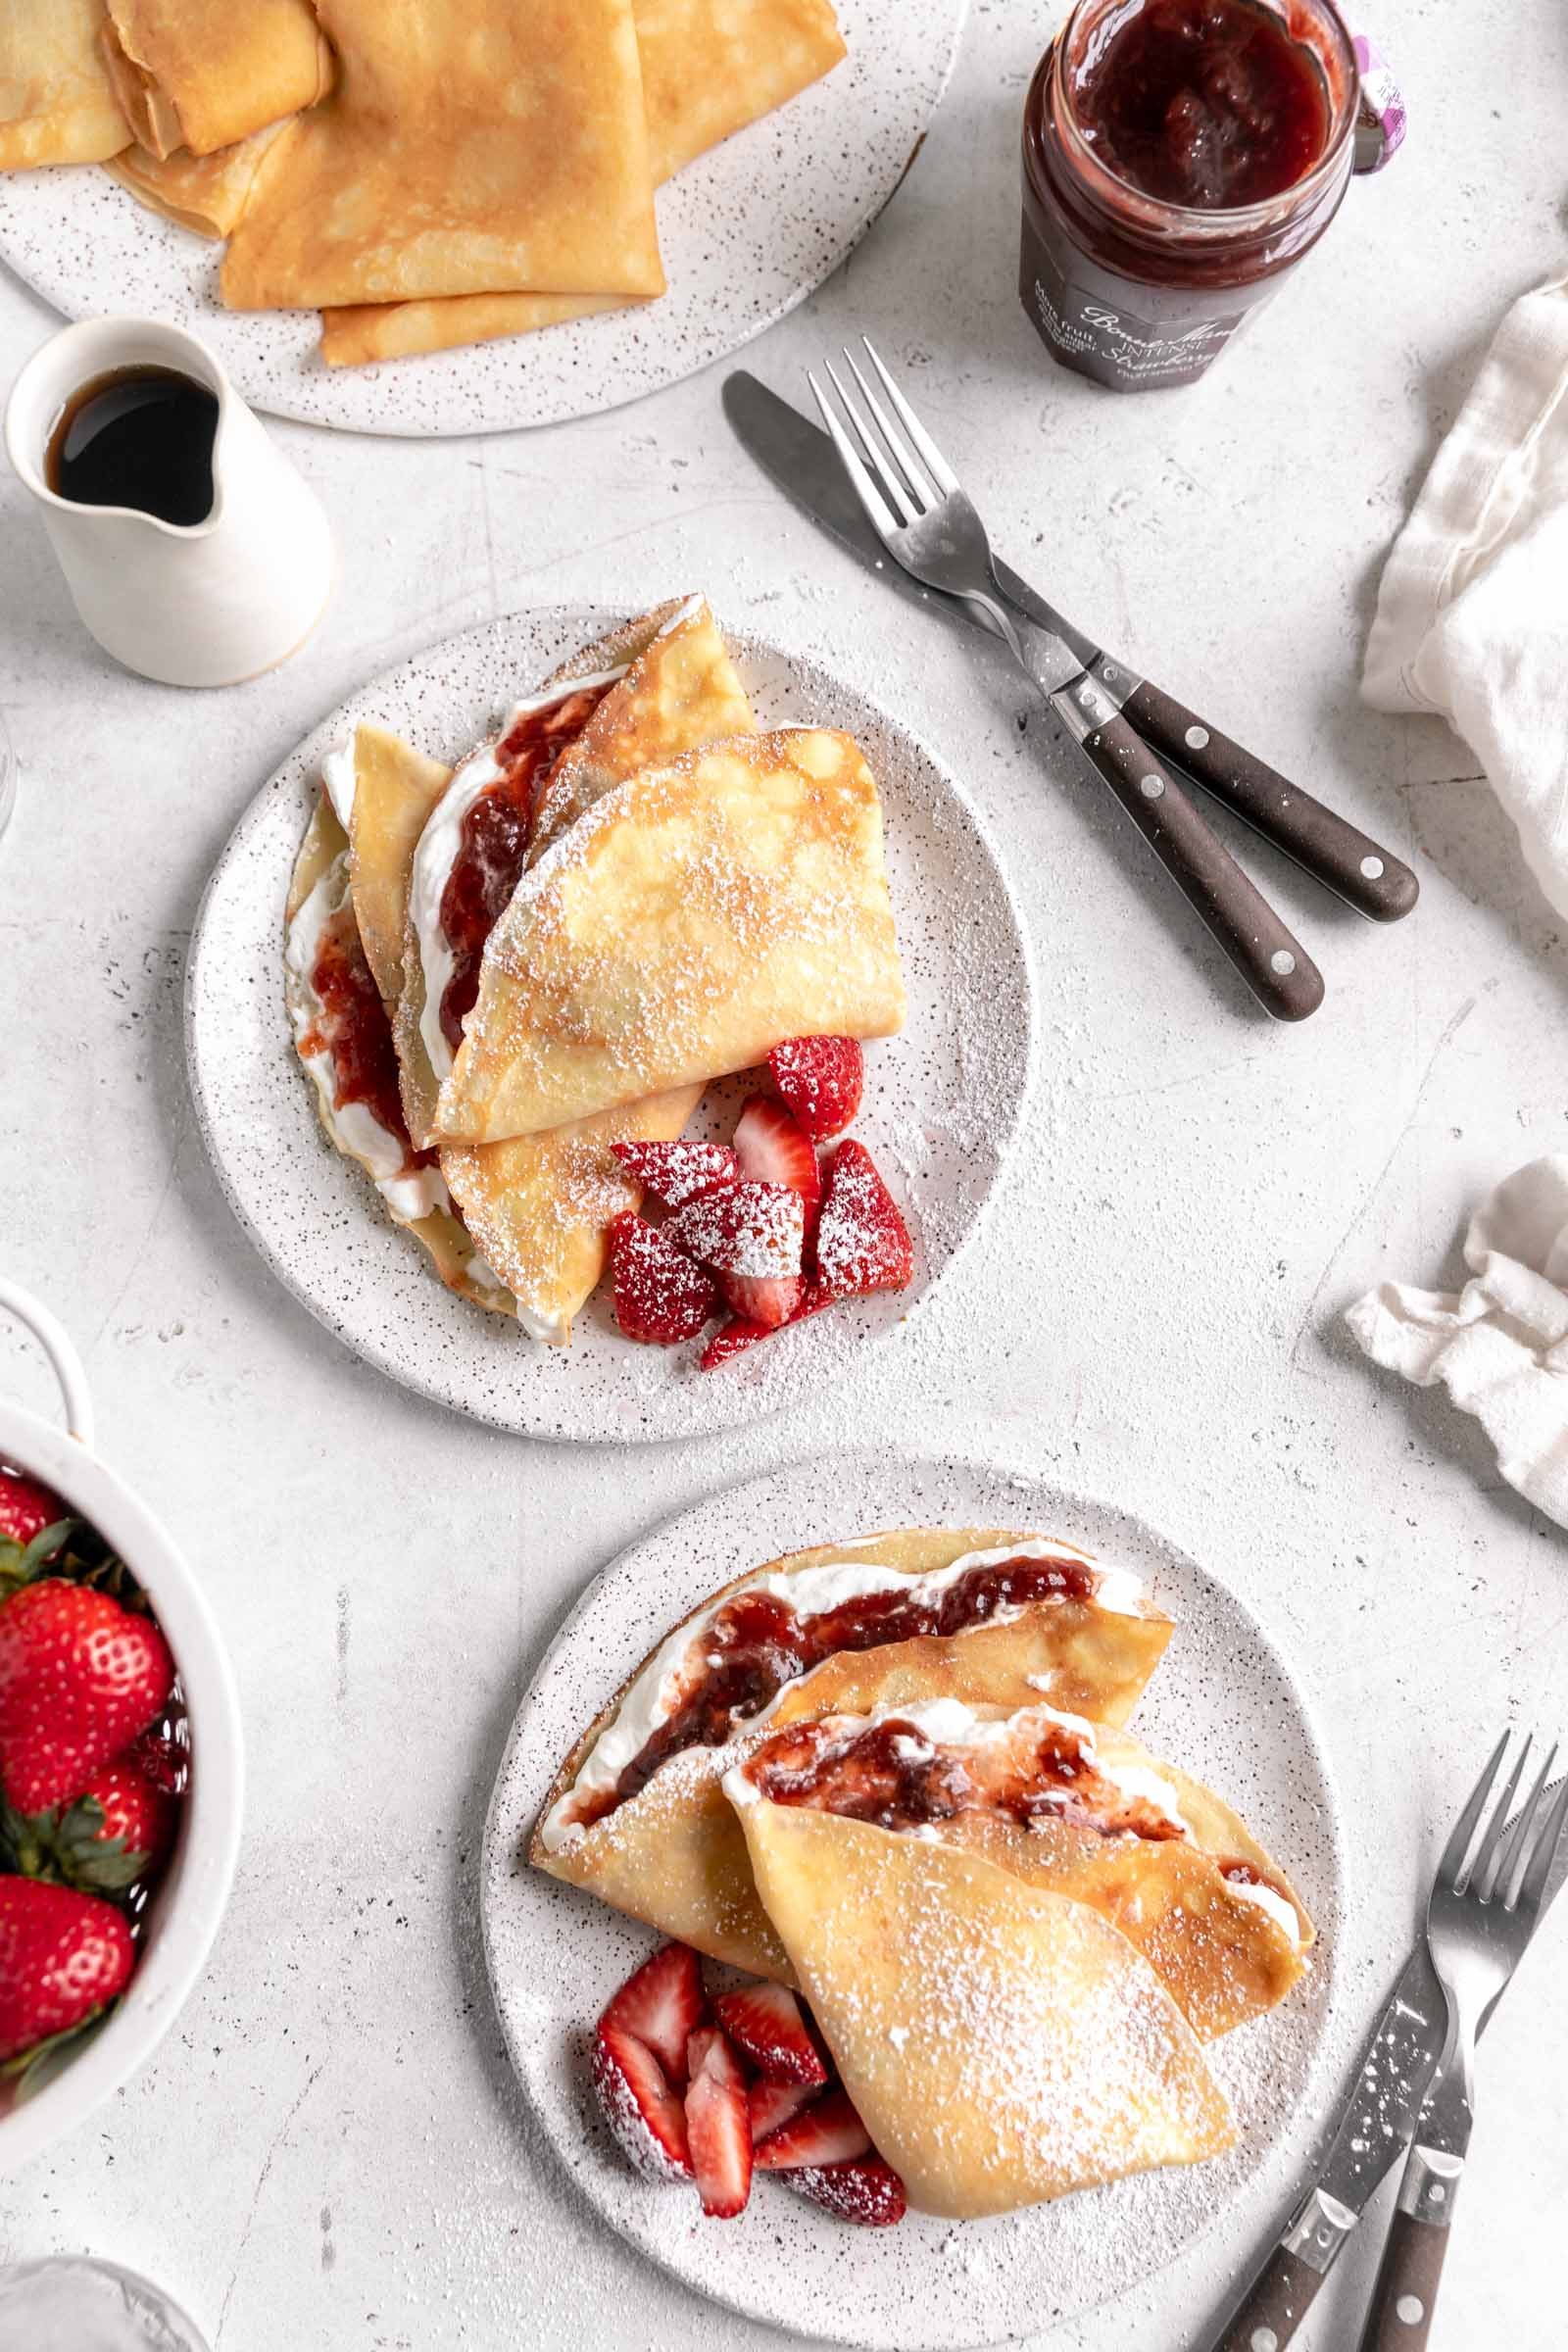 homemade crepes with strawberry jam and whipped cream